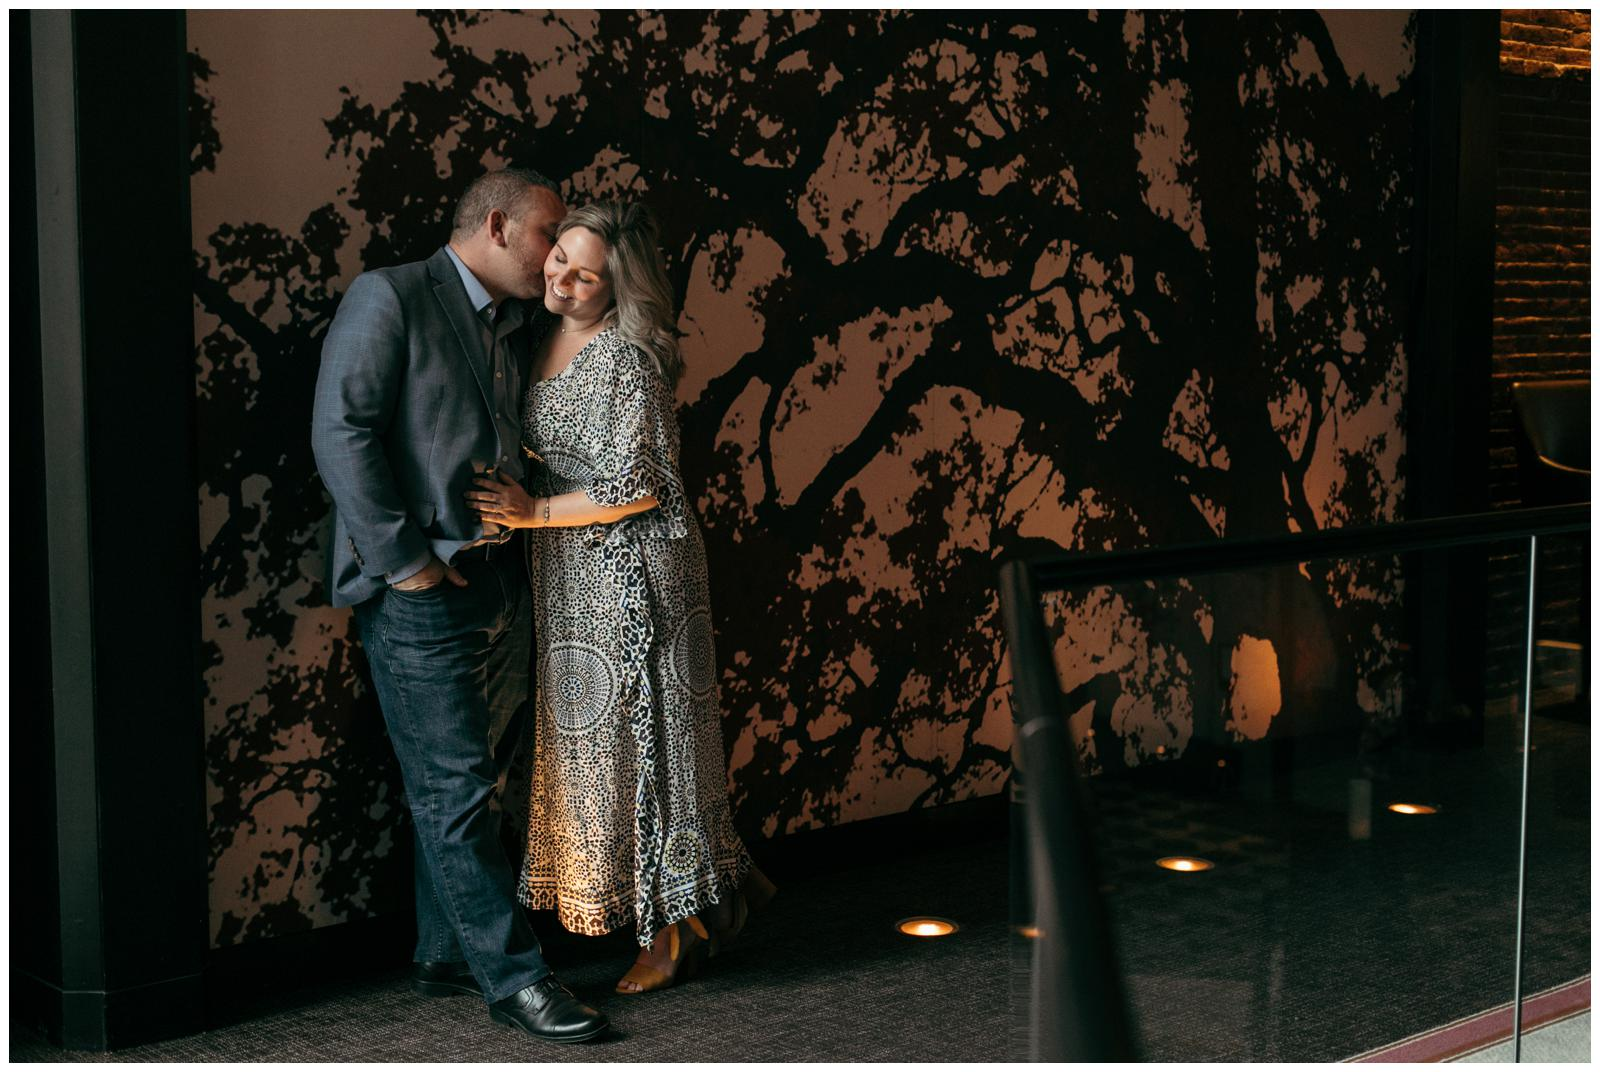 Indoor engagement photo ideas Boston